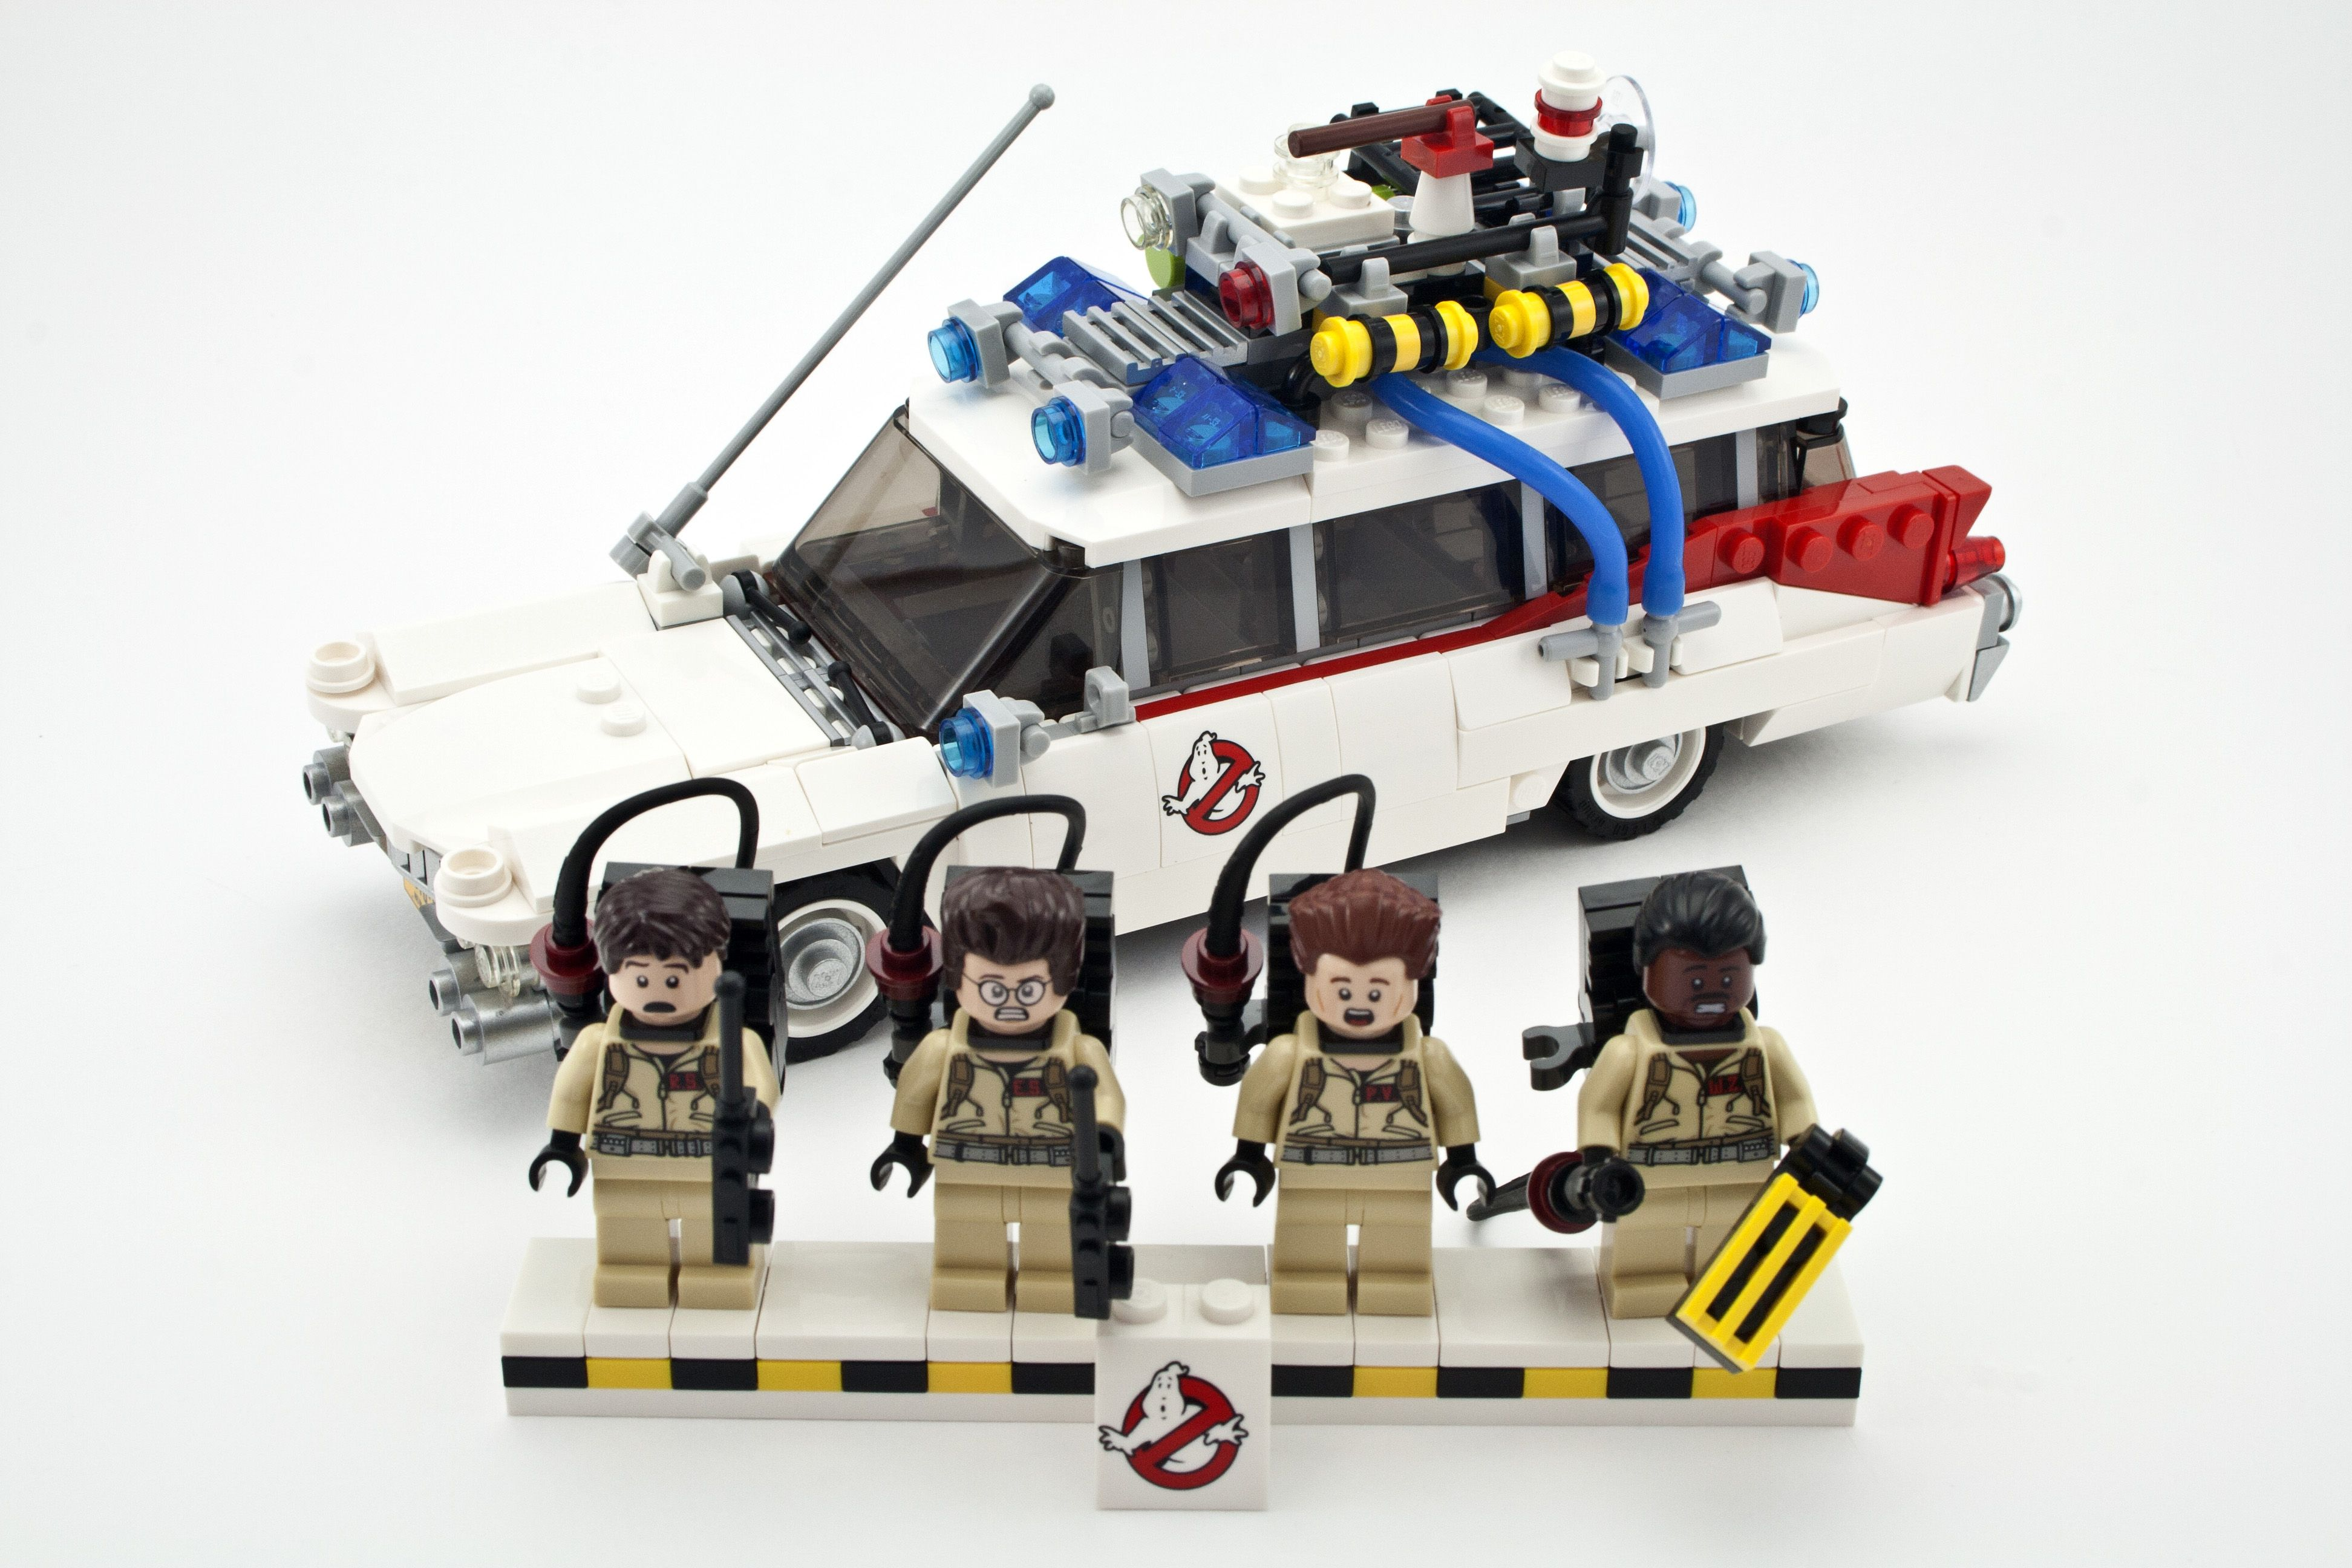 Review Lego 21108 Ghostbusters Ecto 1 Lego Ghostbusters Reviews